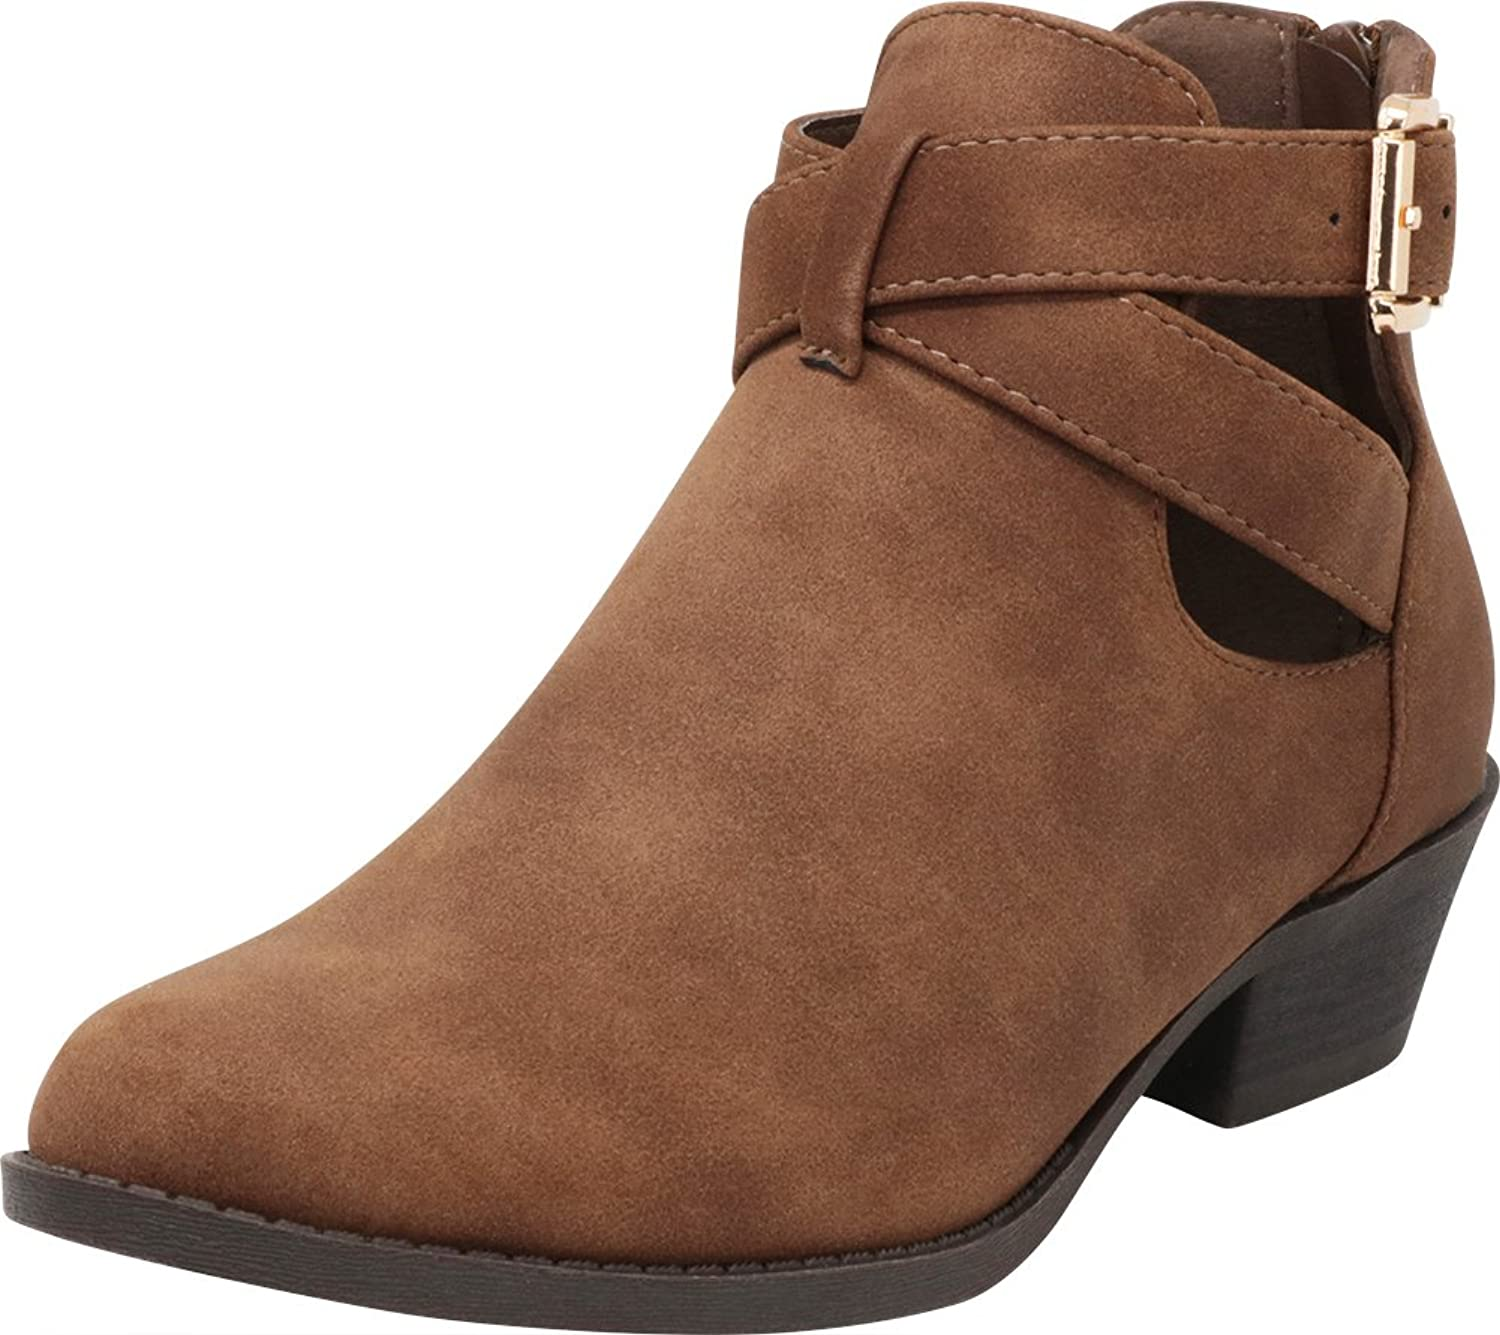 Cambridge Select Women's Closed Toe Western Crisscross Strap Buckle Side Cutout Chunky Stacked Low Heel Ankle Bootie